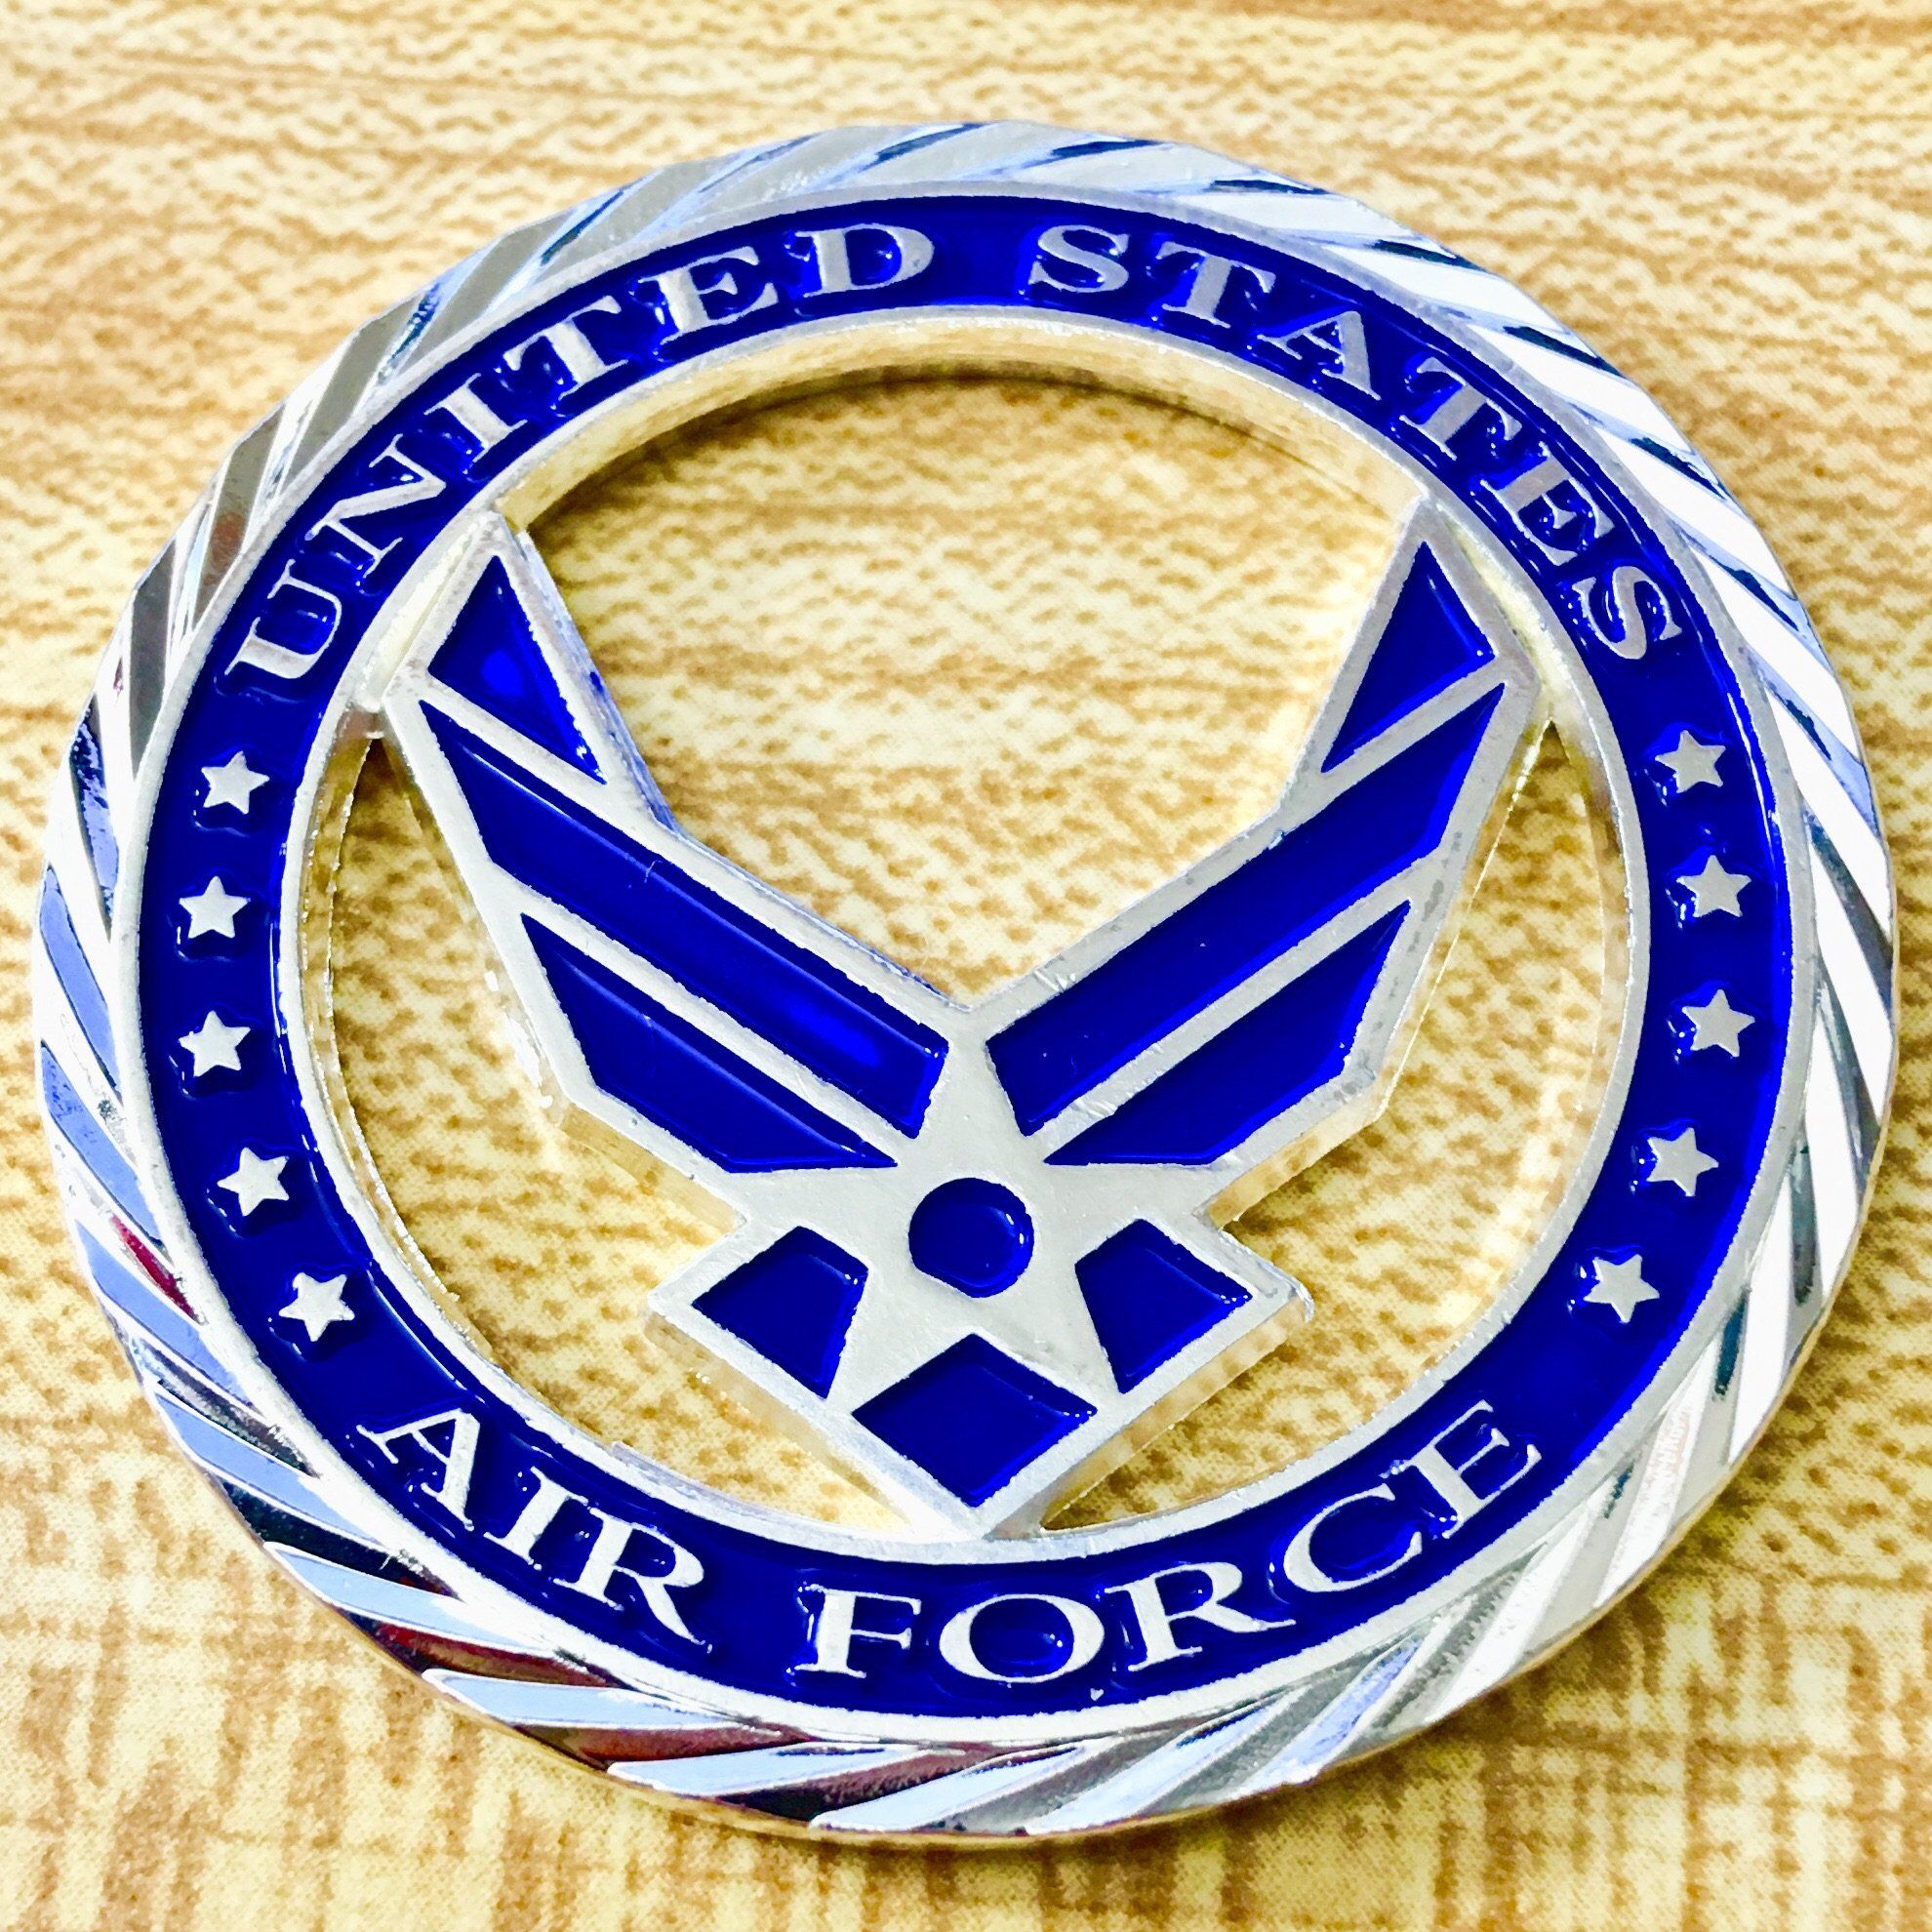 United States Air Force Challenge Coin Challenge coins